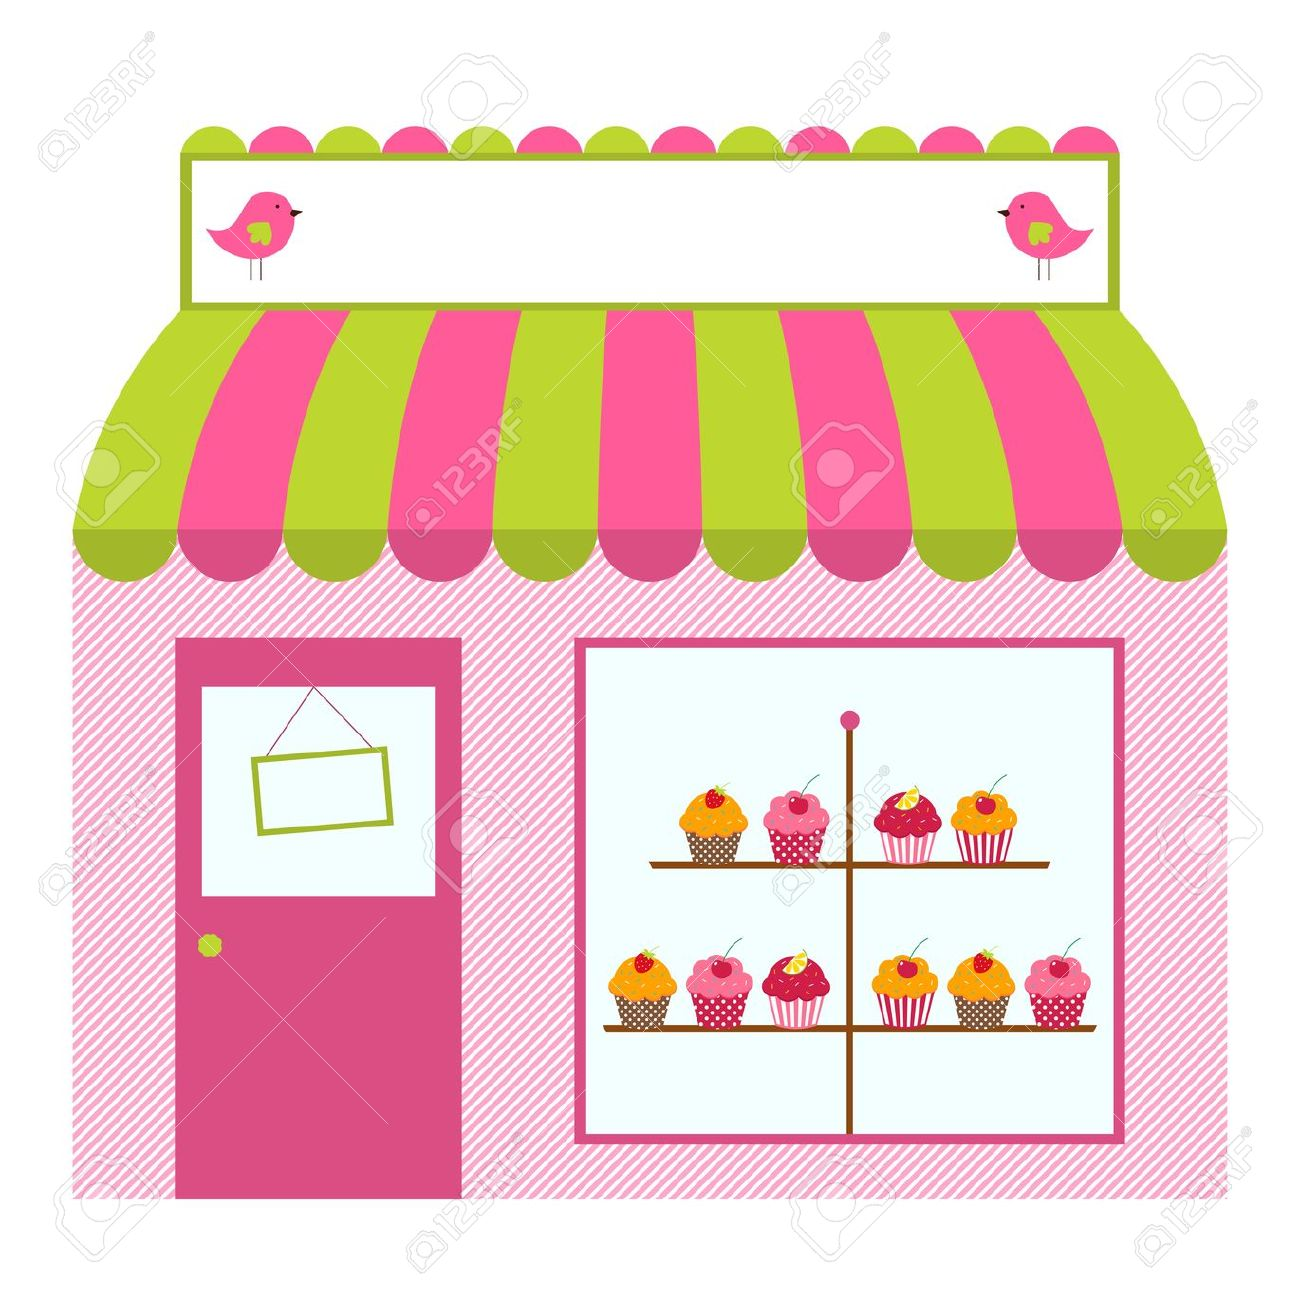 page clip art. Bakery clipart exterior